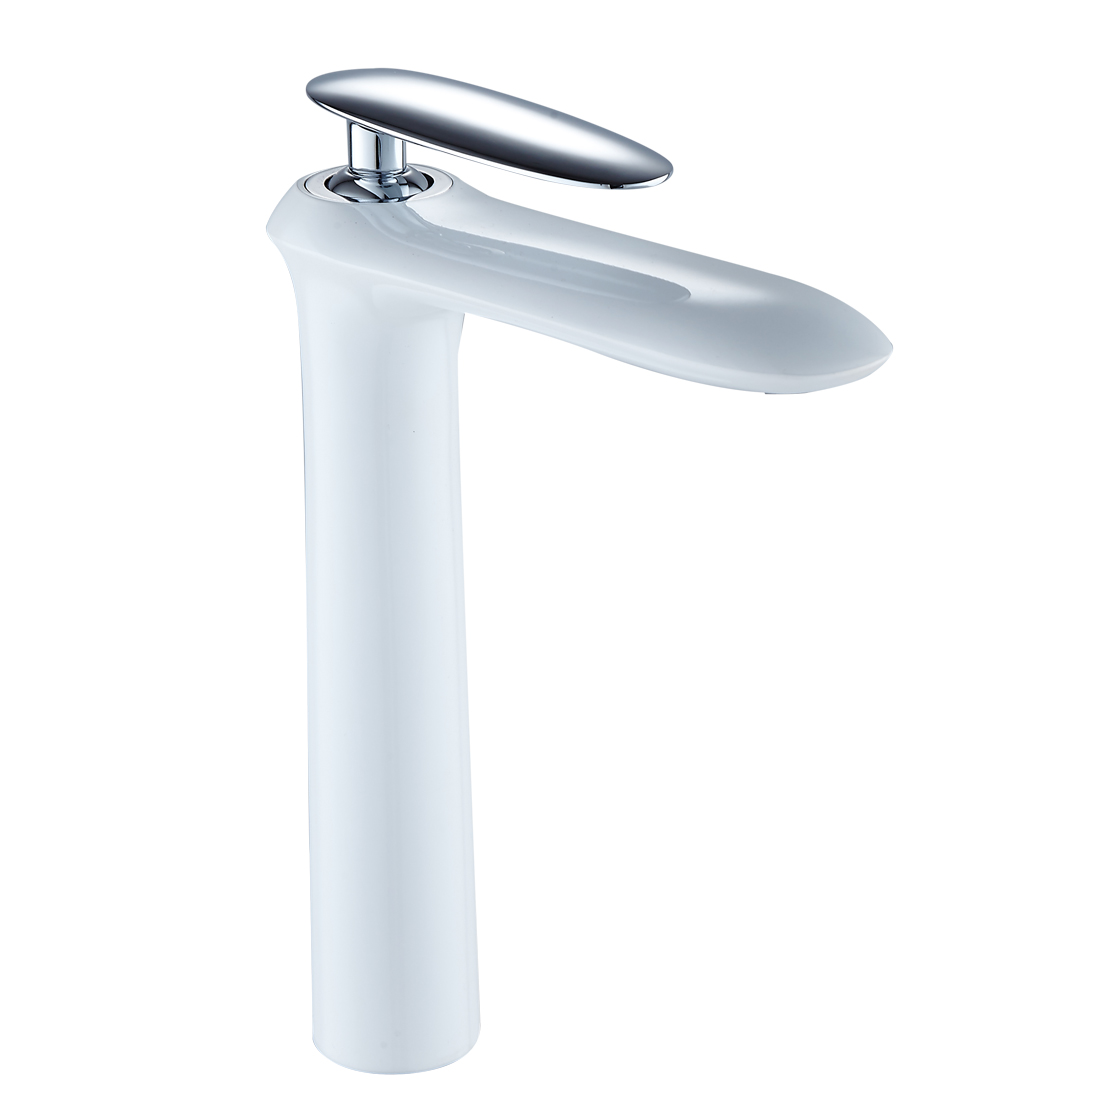 FLG White And Chrome Tall Bathroom Bathroom Faucet